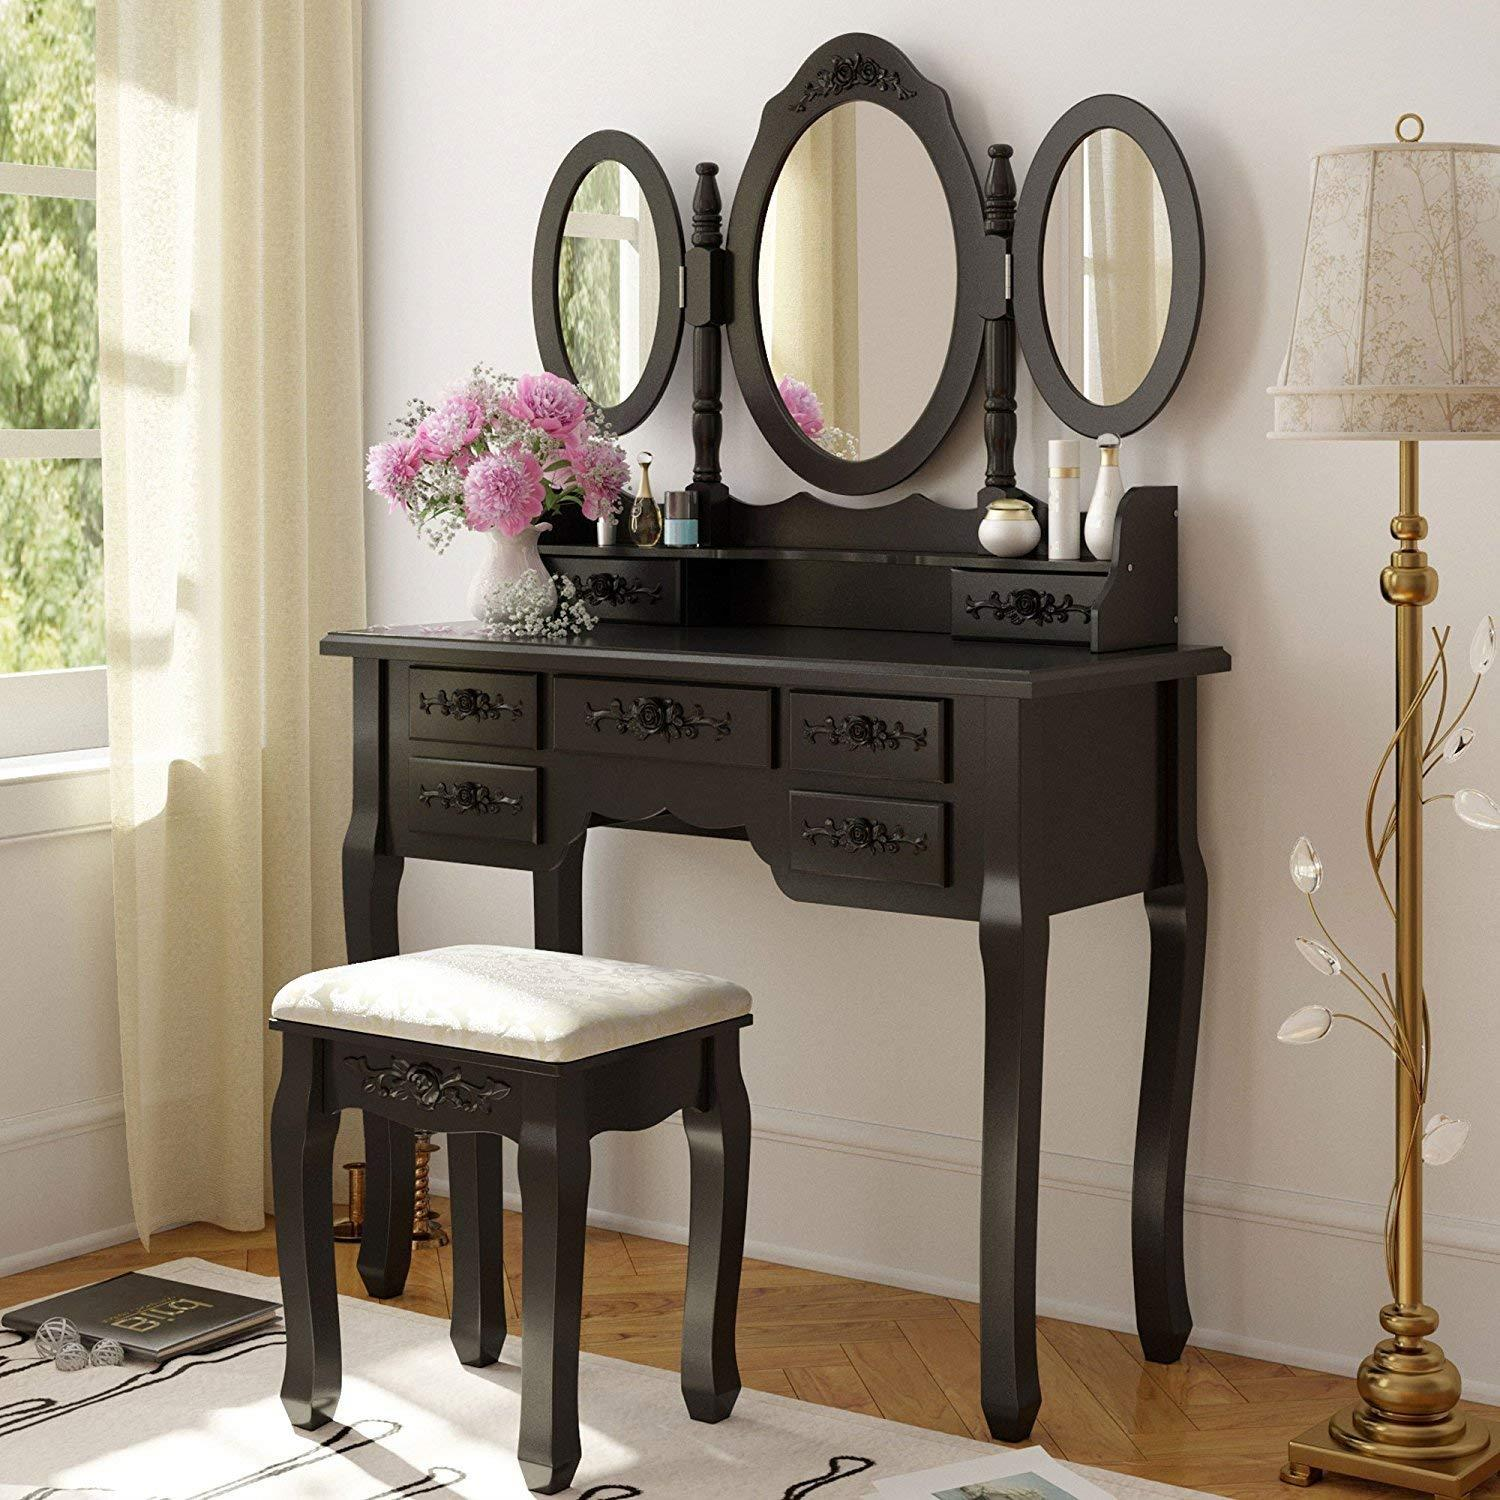 Ktaxon Vanity Table Make Up Table Set W Stool 7 Drawer 3 Mirrors Fold Black Walmart Com Walmart Com